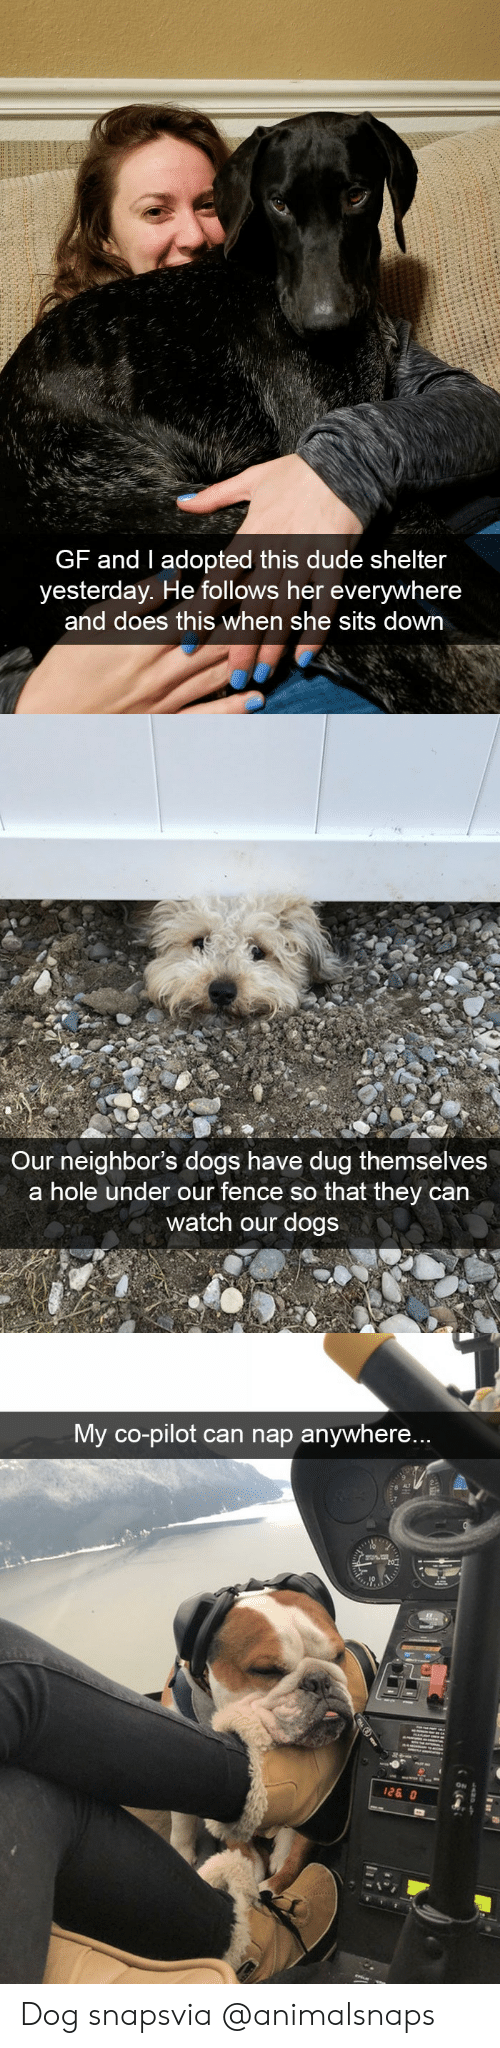 Shelters: GF and I adopted this dude shelter  yesterday. He follows her everywhere  and does this when she sits down   Our neighbor's dogs have dug themselves  a hole under our fence so that they can  watch our dogs   My co-pilot can nap anywhere...  ON Dog snapsvia @animalsnaps